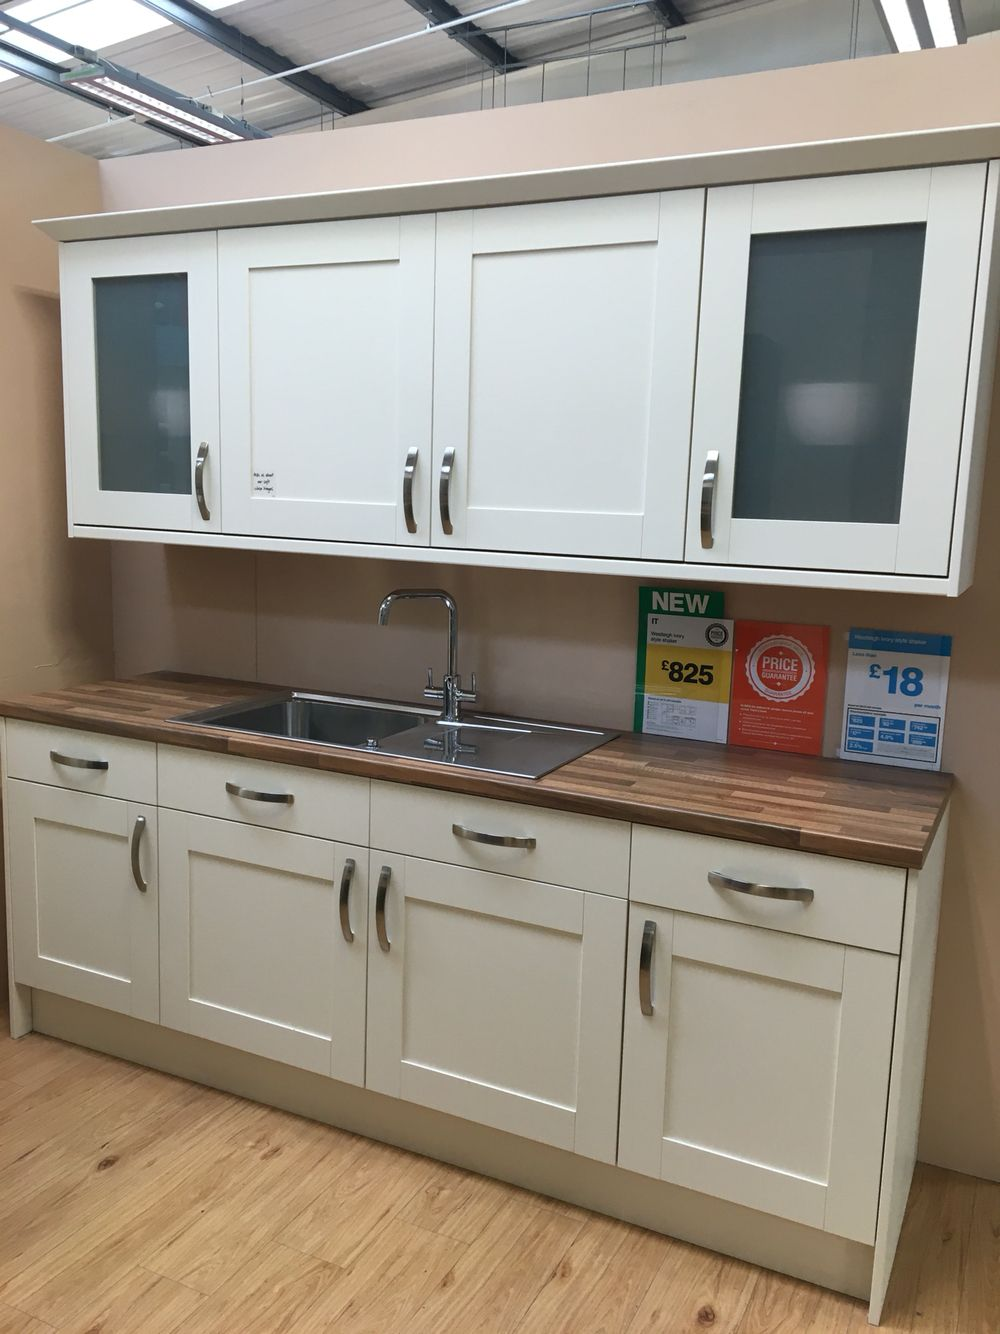 B&Q Westleigh Ivory Style Shaker kitchen | кухня | Pinterest ...